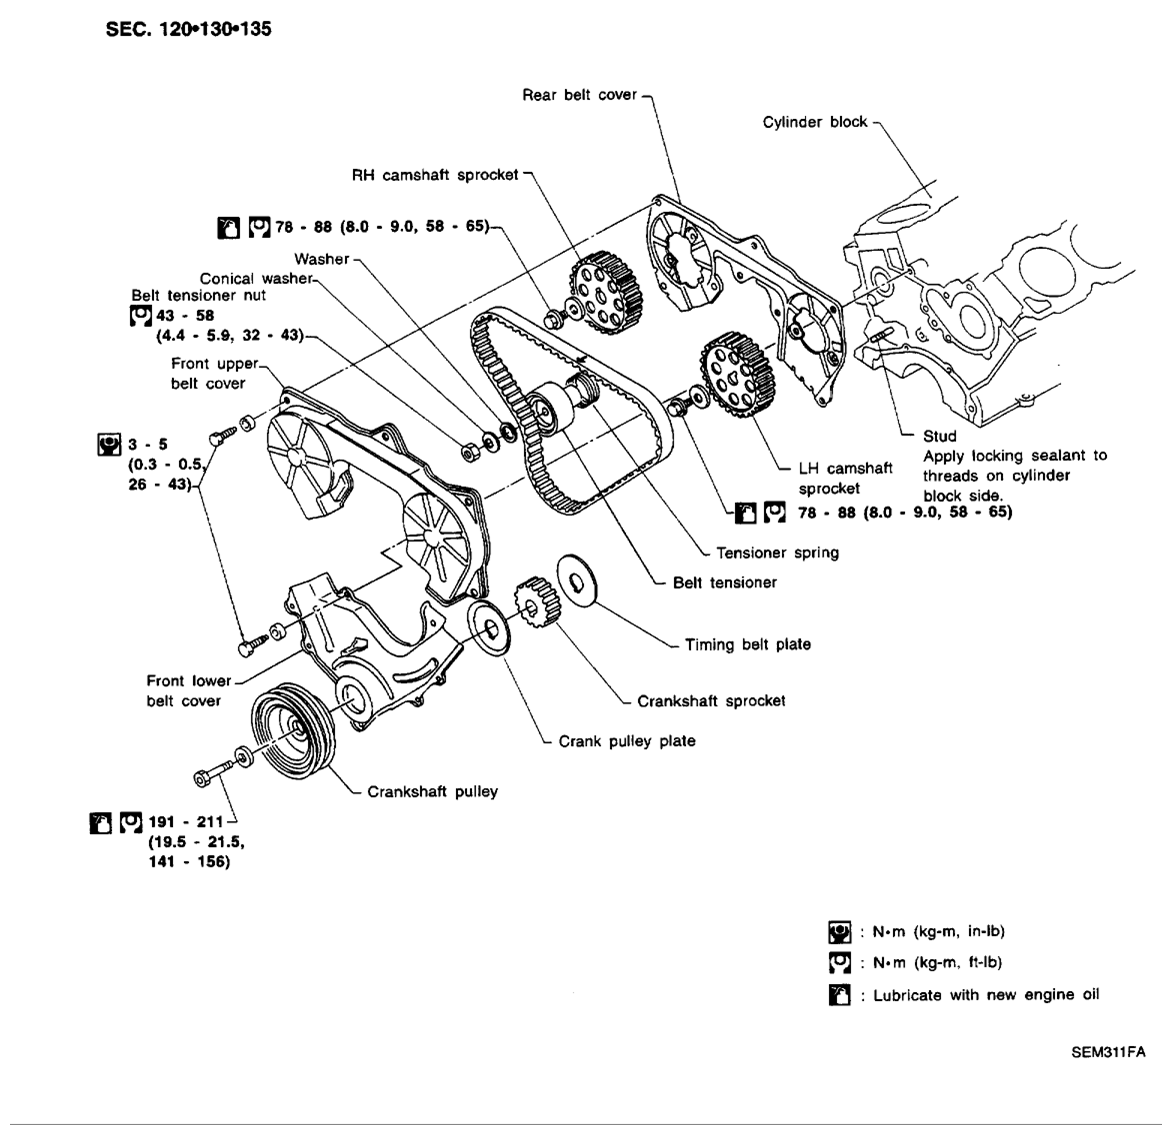 Rear Wheel 1 furthermore How To Replace Timing Chain On Audi A3 1 8 Tfsi 2008 2012 additionally 3lamh 2004 Holden Astra Model Ah04a Sedan Help besides 7piig Ford Ranger Need Set Timing 92 Ford Ranger also T9519579 Need diagram. on crankshaft pulley bolt